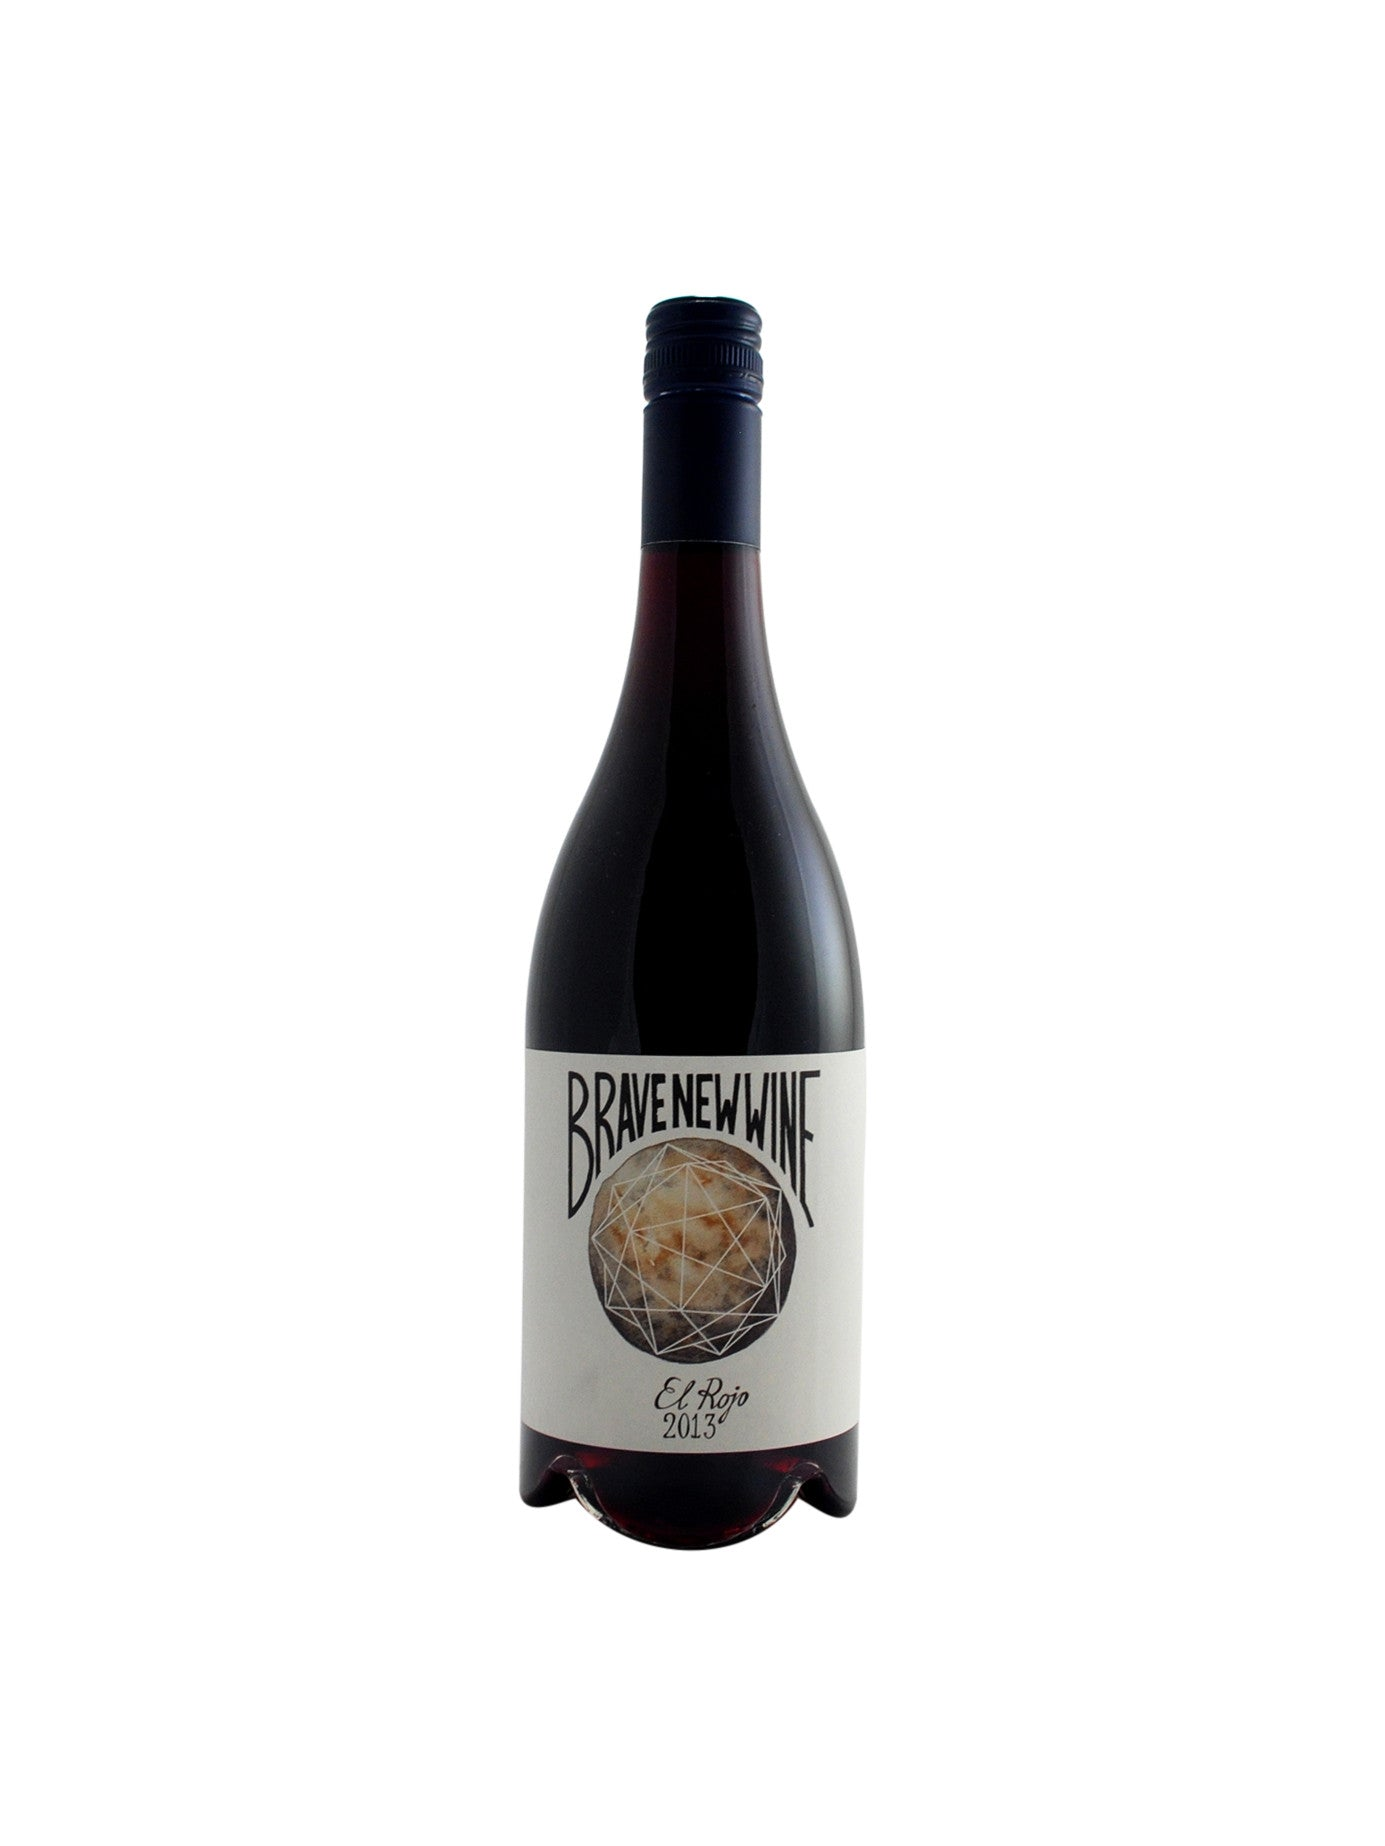 Brave New Wine 'El Rojo' | Tempranillo Graciano Shiraz 2013 | Mt Barker WA